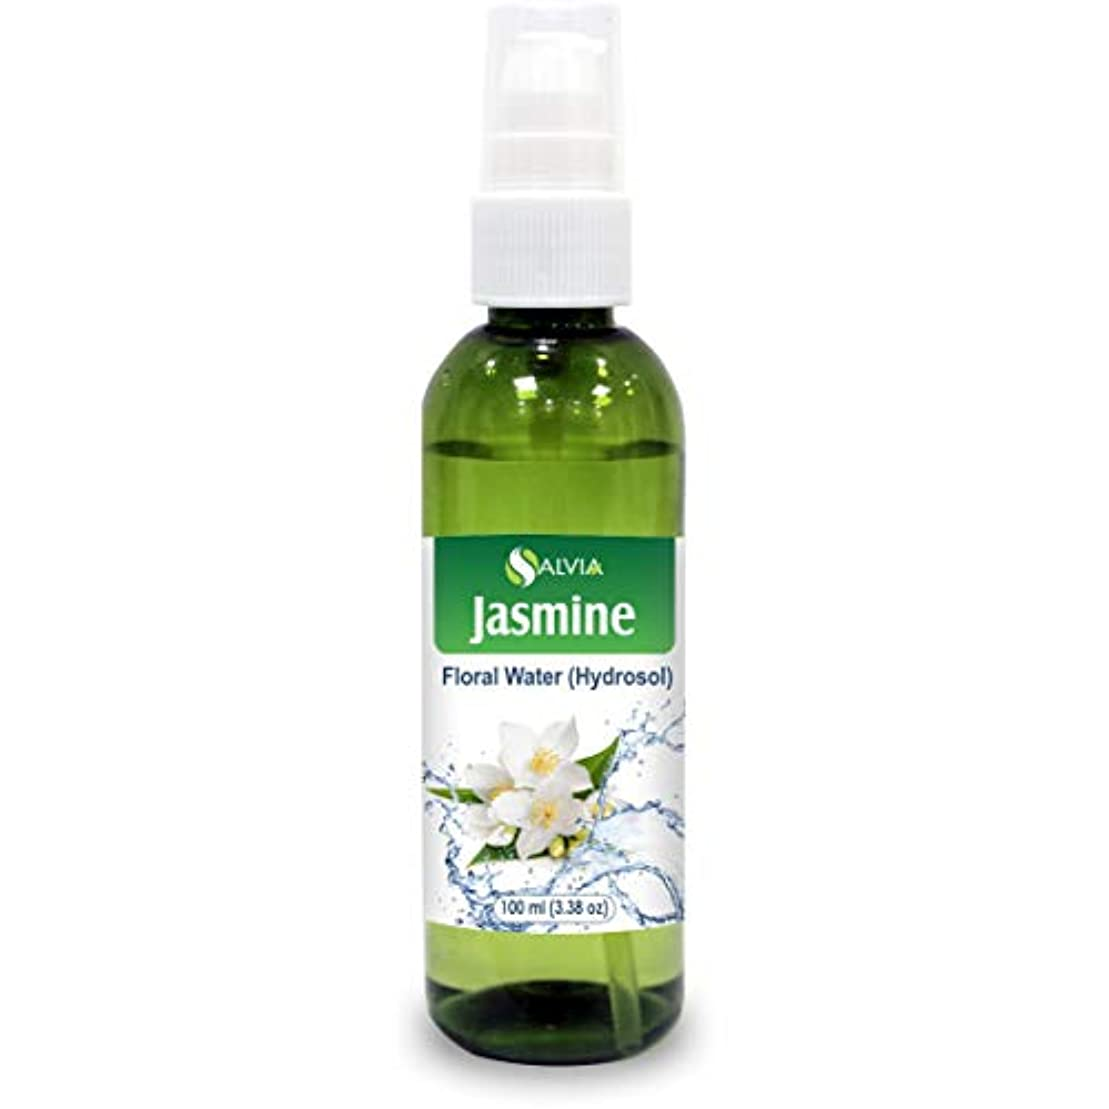 とてもサイトトピックJasmine Floral Water 100ml (Hydrosol) 100% Pure And Natural